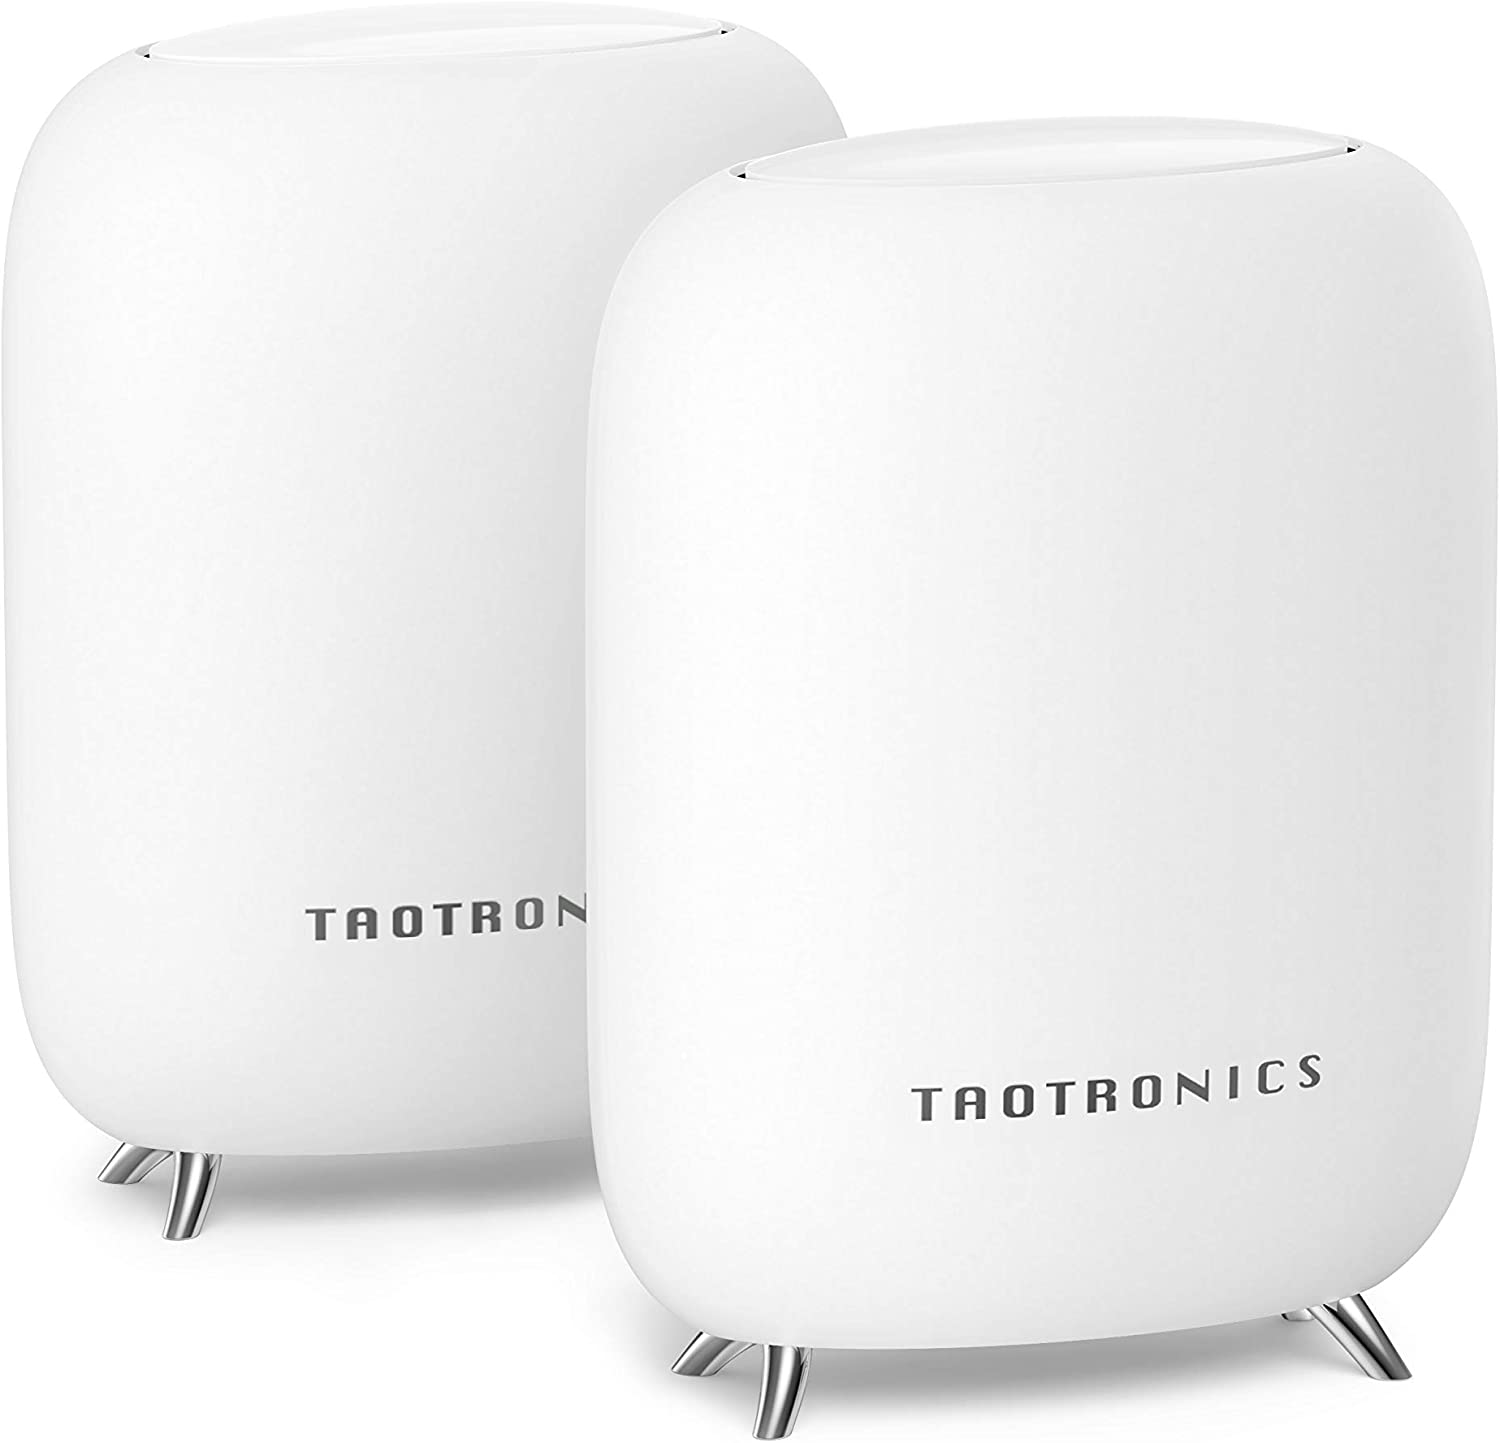 TaoTronics Mesh WiFi System, Tri-Band AC3000 3Gbps Speed 5,000 Sq. Ft Coverage Whole Home WiFi Router/Extender Replacement, 4 Gigabit Ethernet & 1 USB 3.0 Ports, Connection of up to 200 Devices-2 Pack